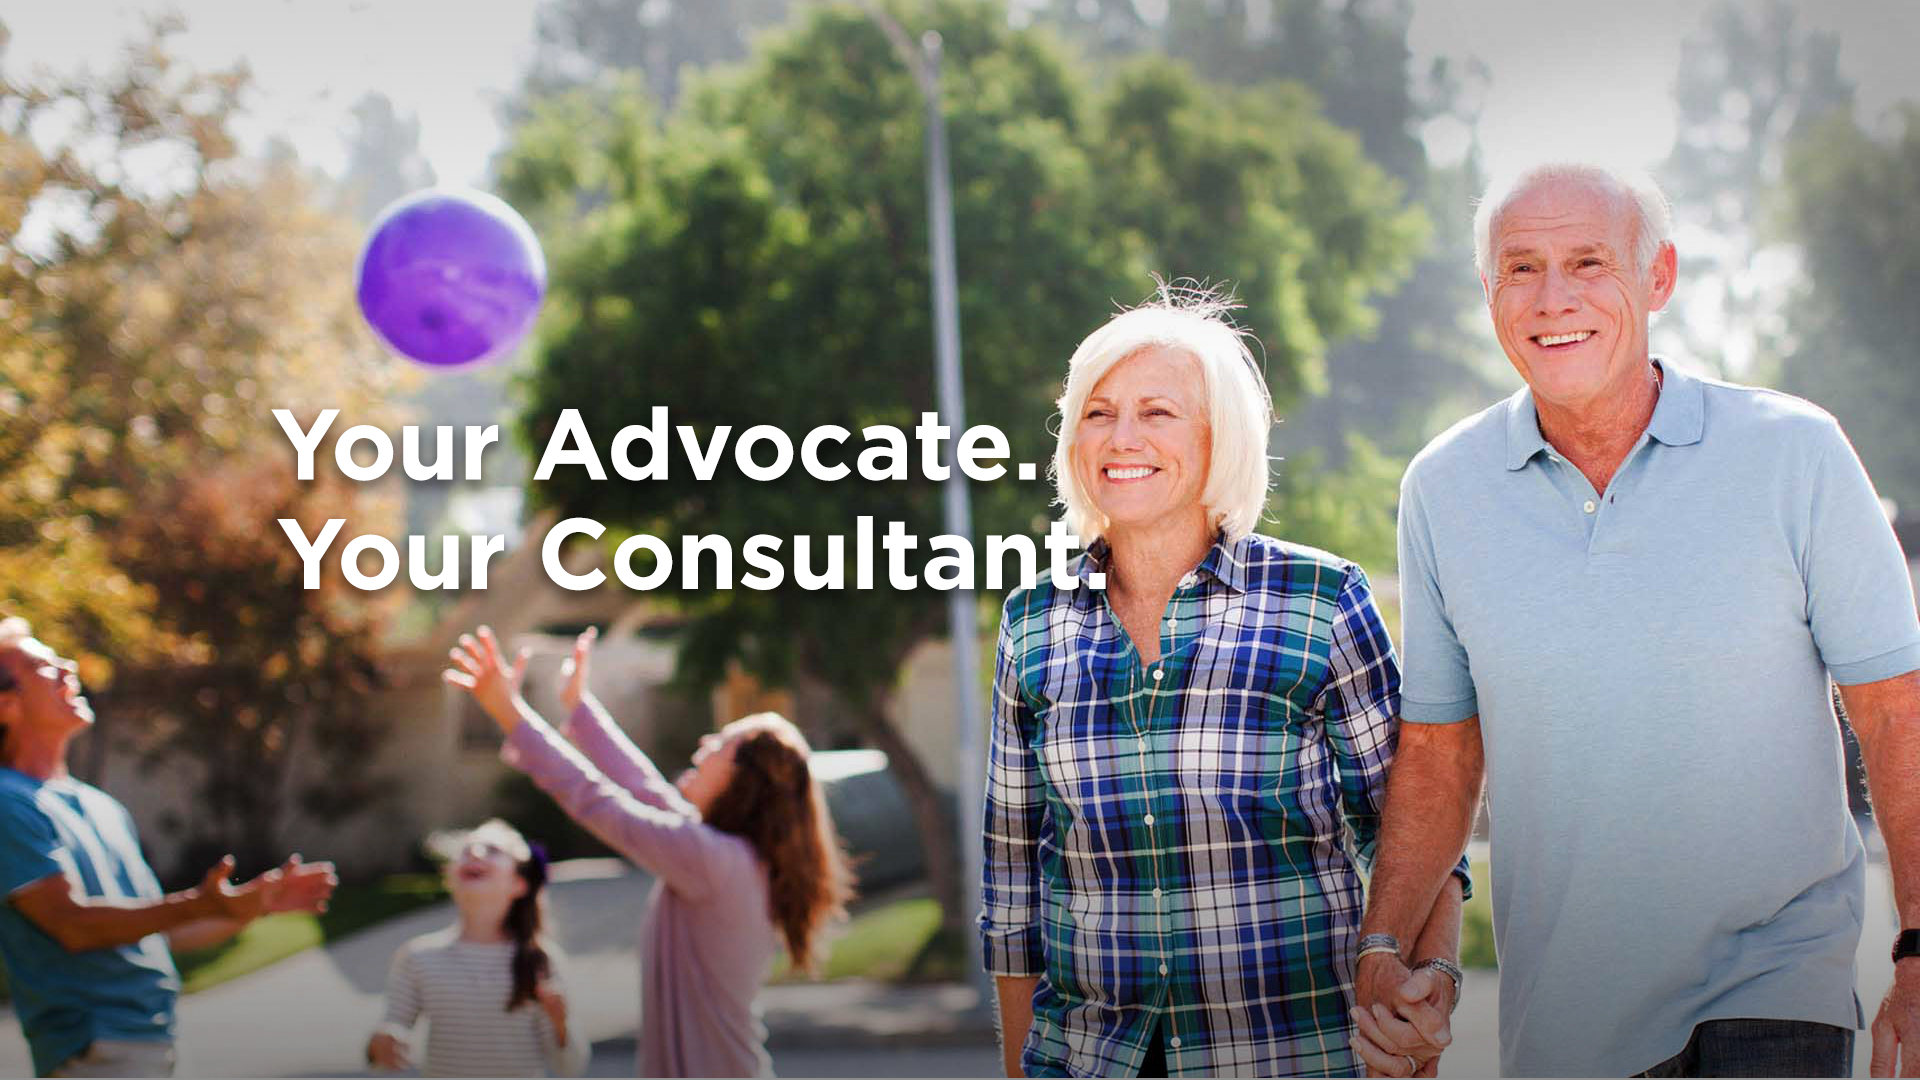 Your Advocate. Your Consultant.